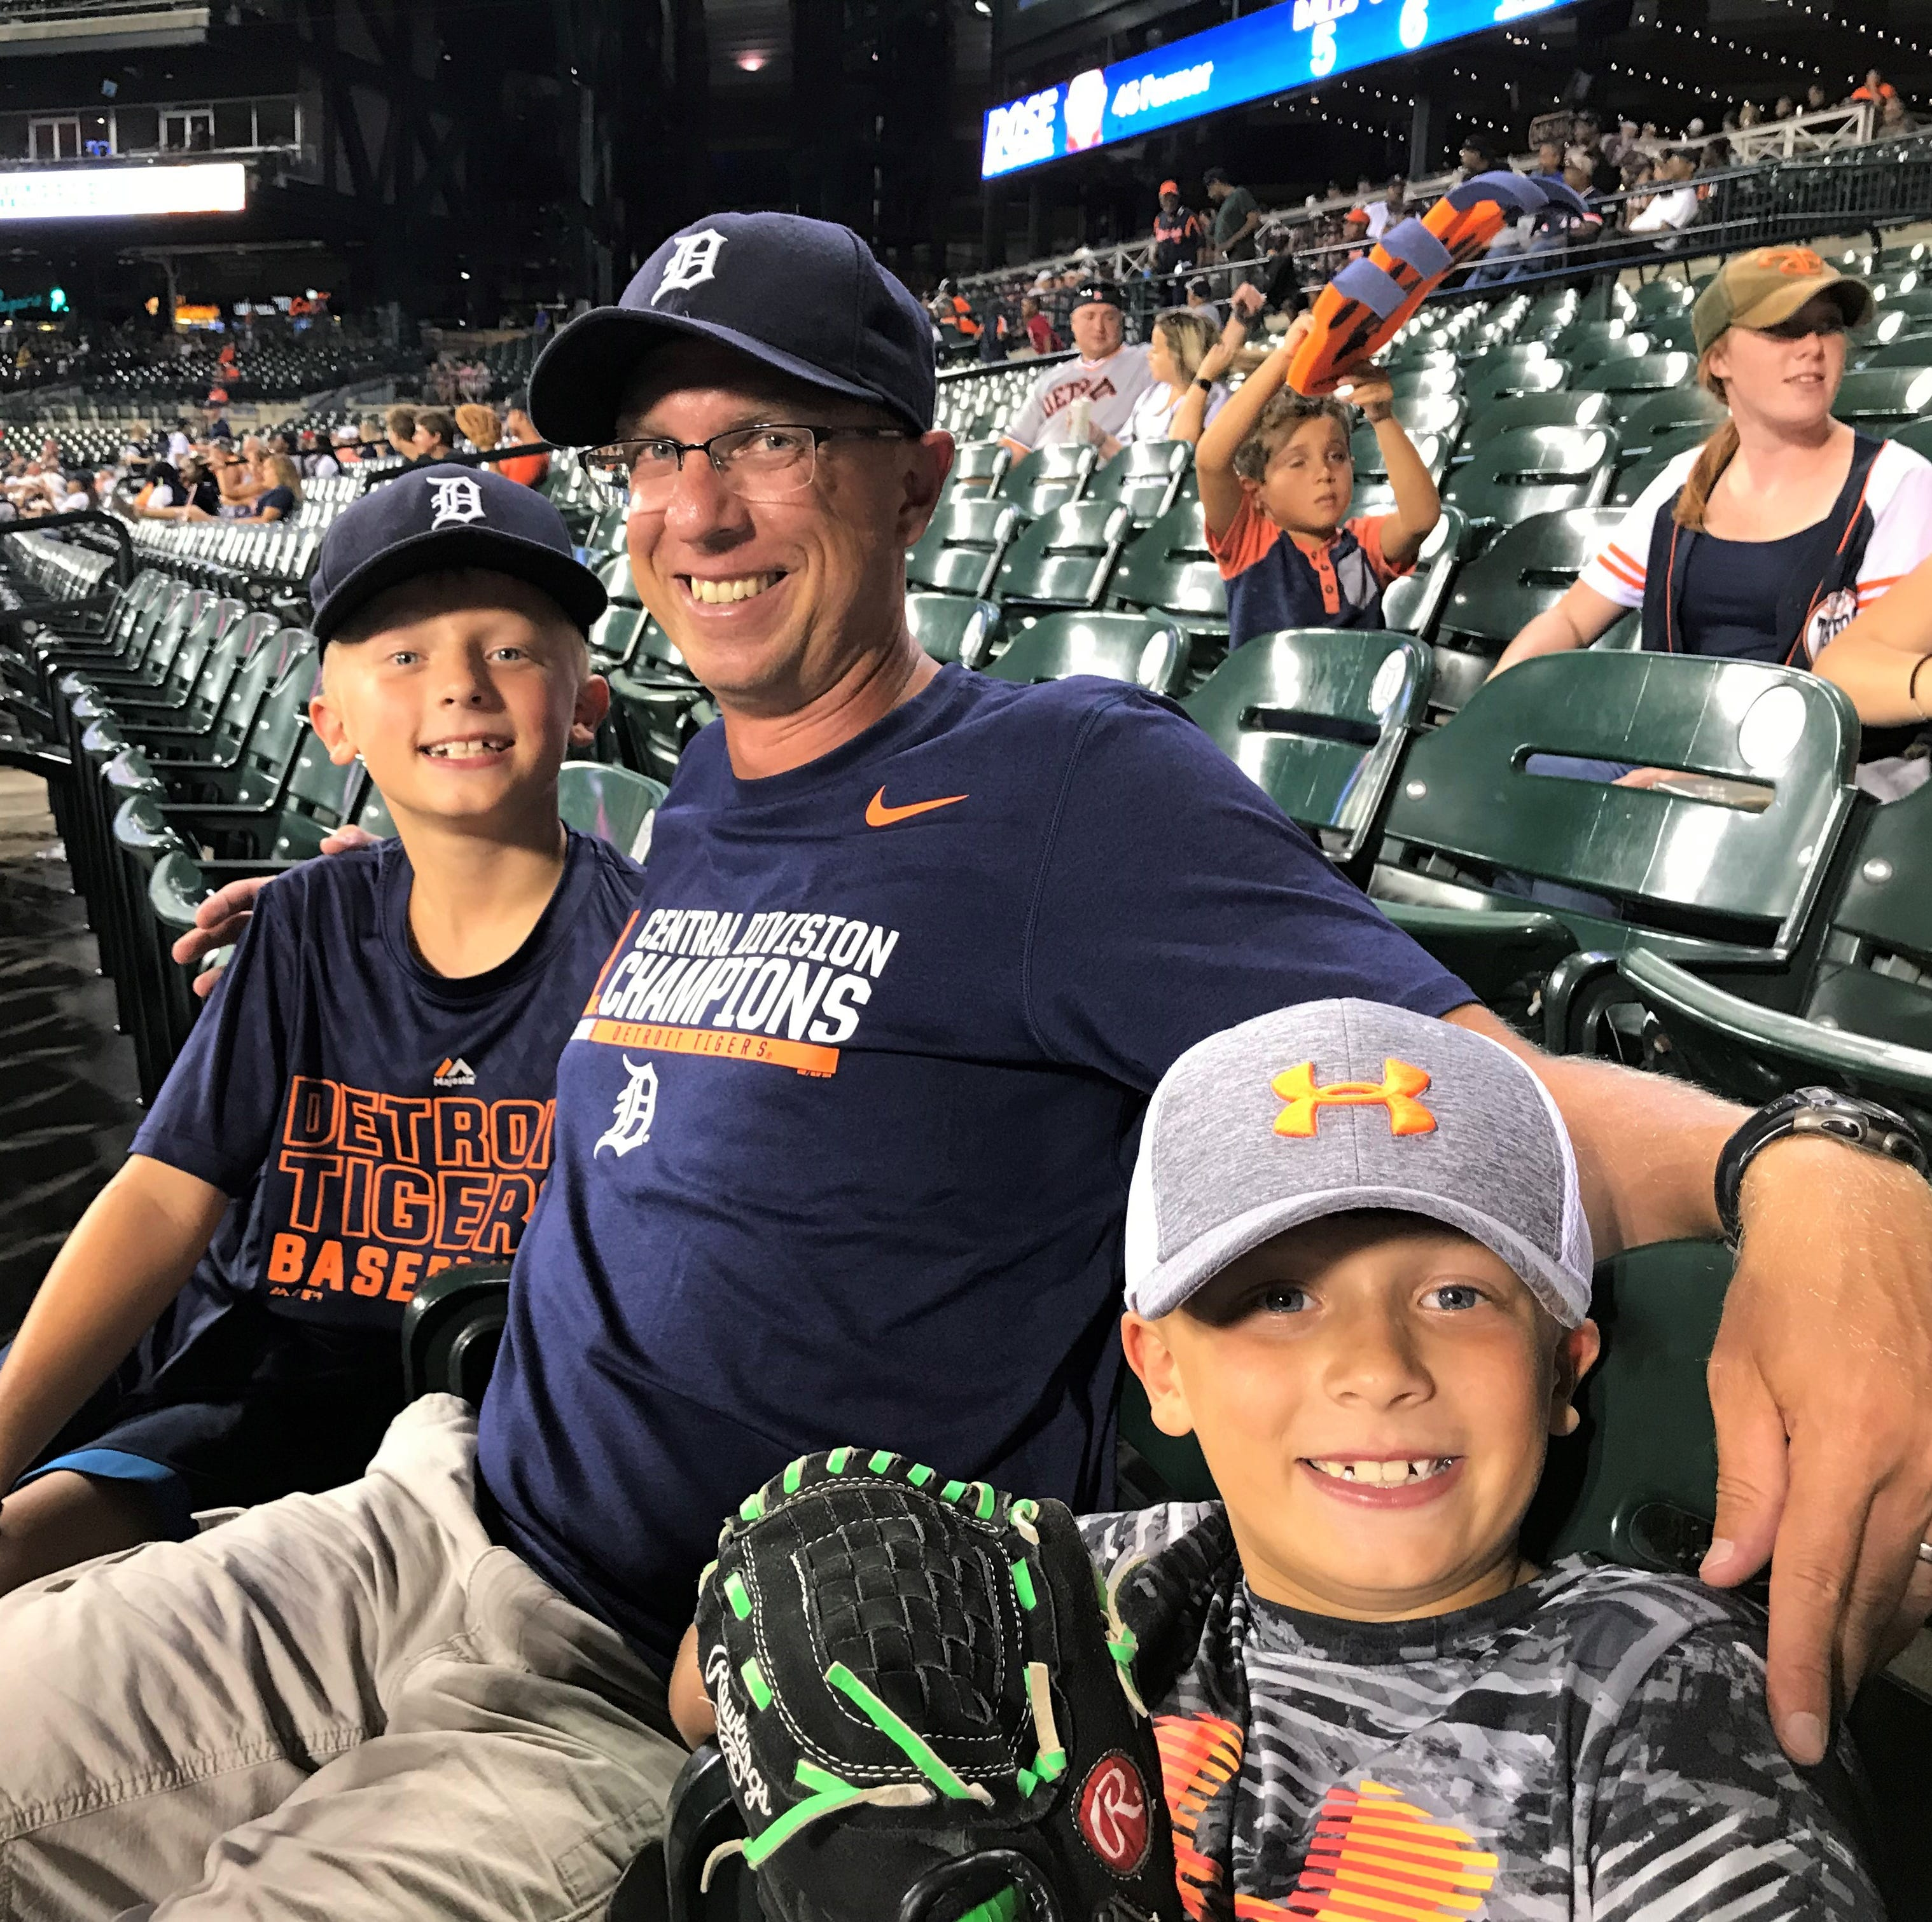 Franklin cross country coach Dave Bjorklund (middle), with his two sons Tyler (left) and Ryan (right), caught LaMarre's first Major League homer at Comerica Park.